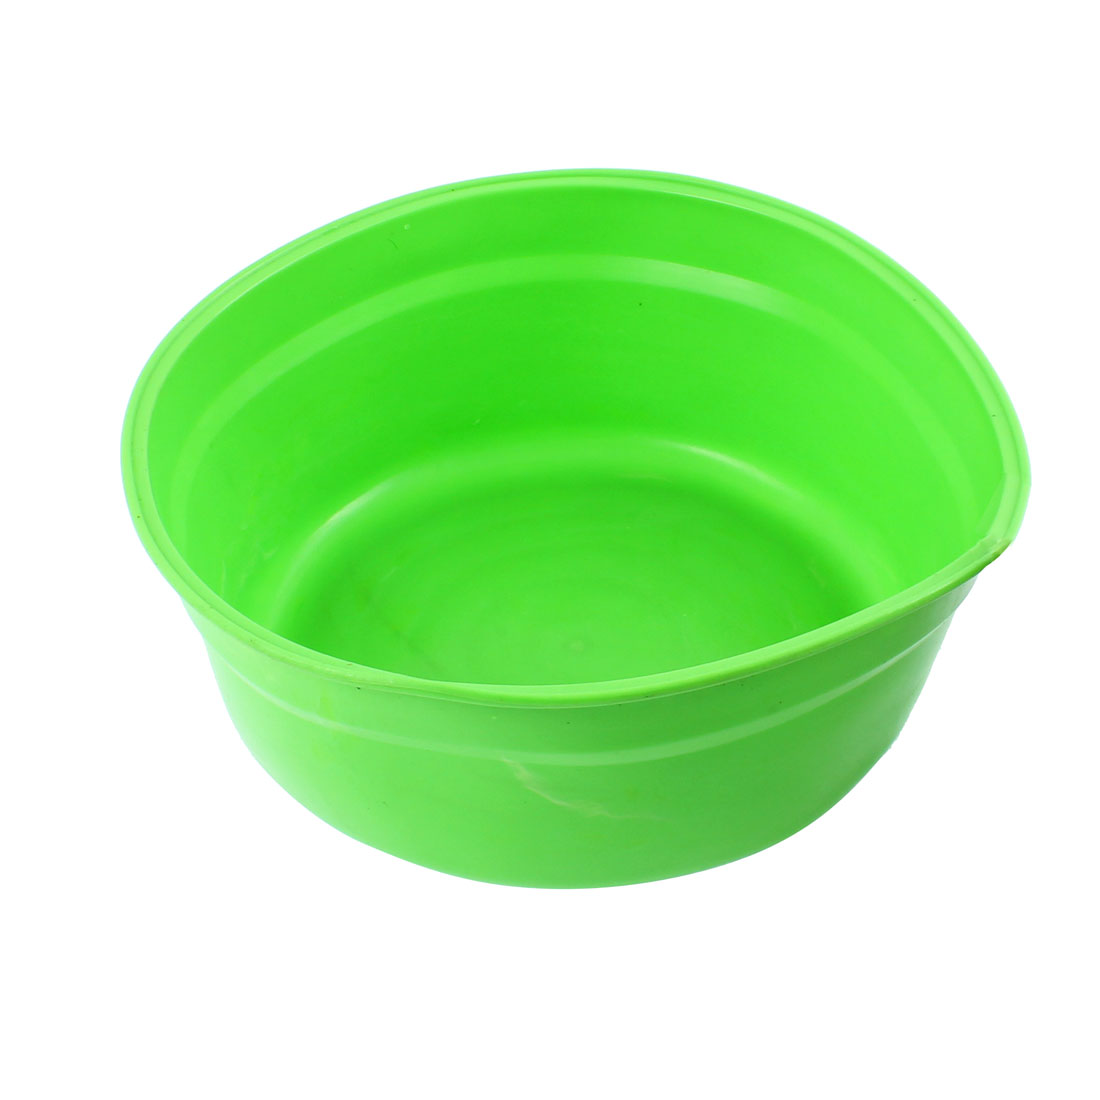 Rubber Fishing Food Bait Pot Fodder Basin Green 23 x 9cm